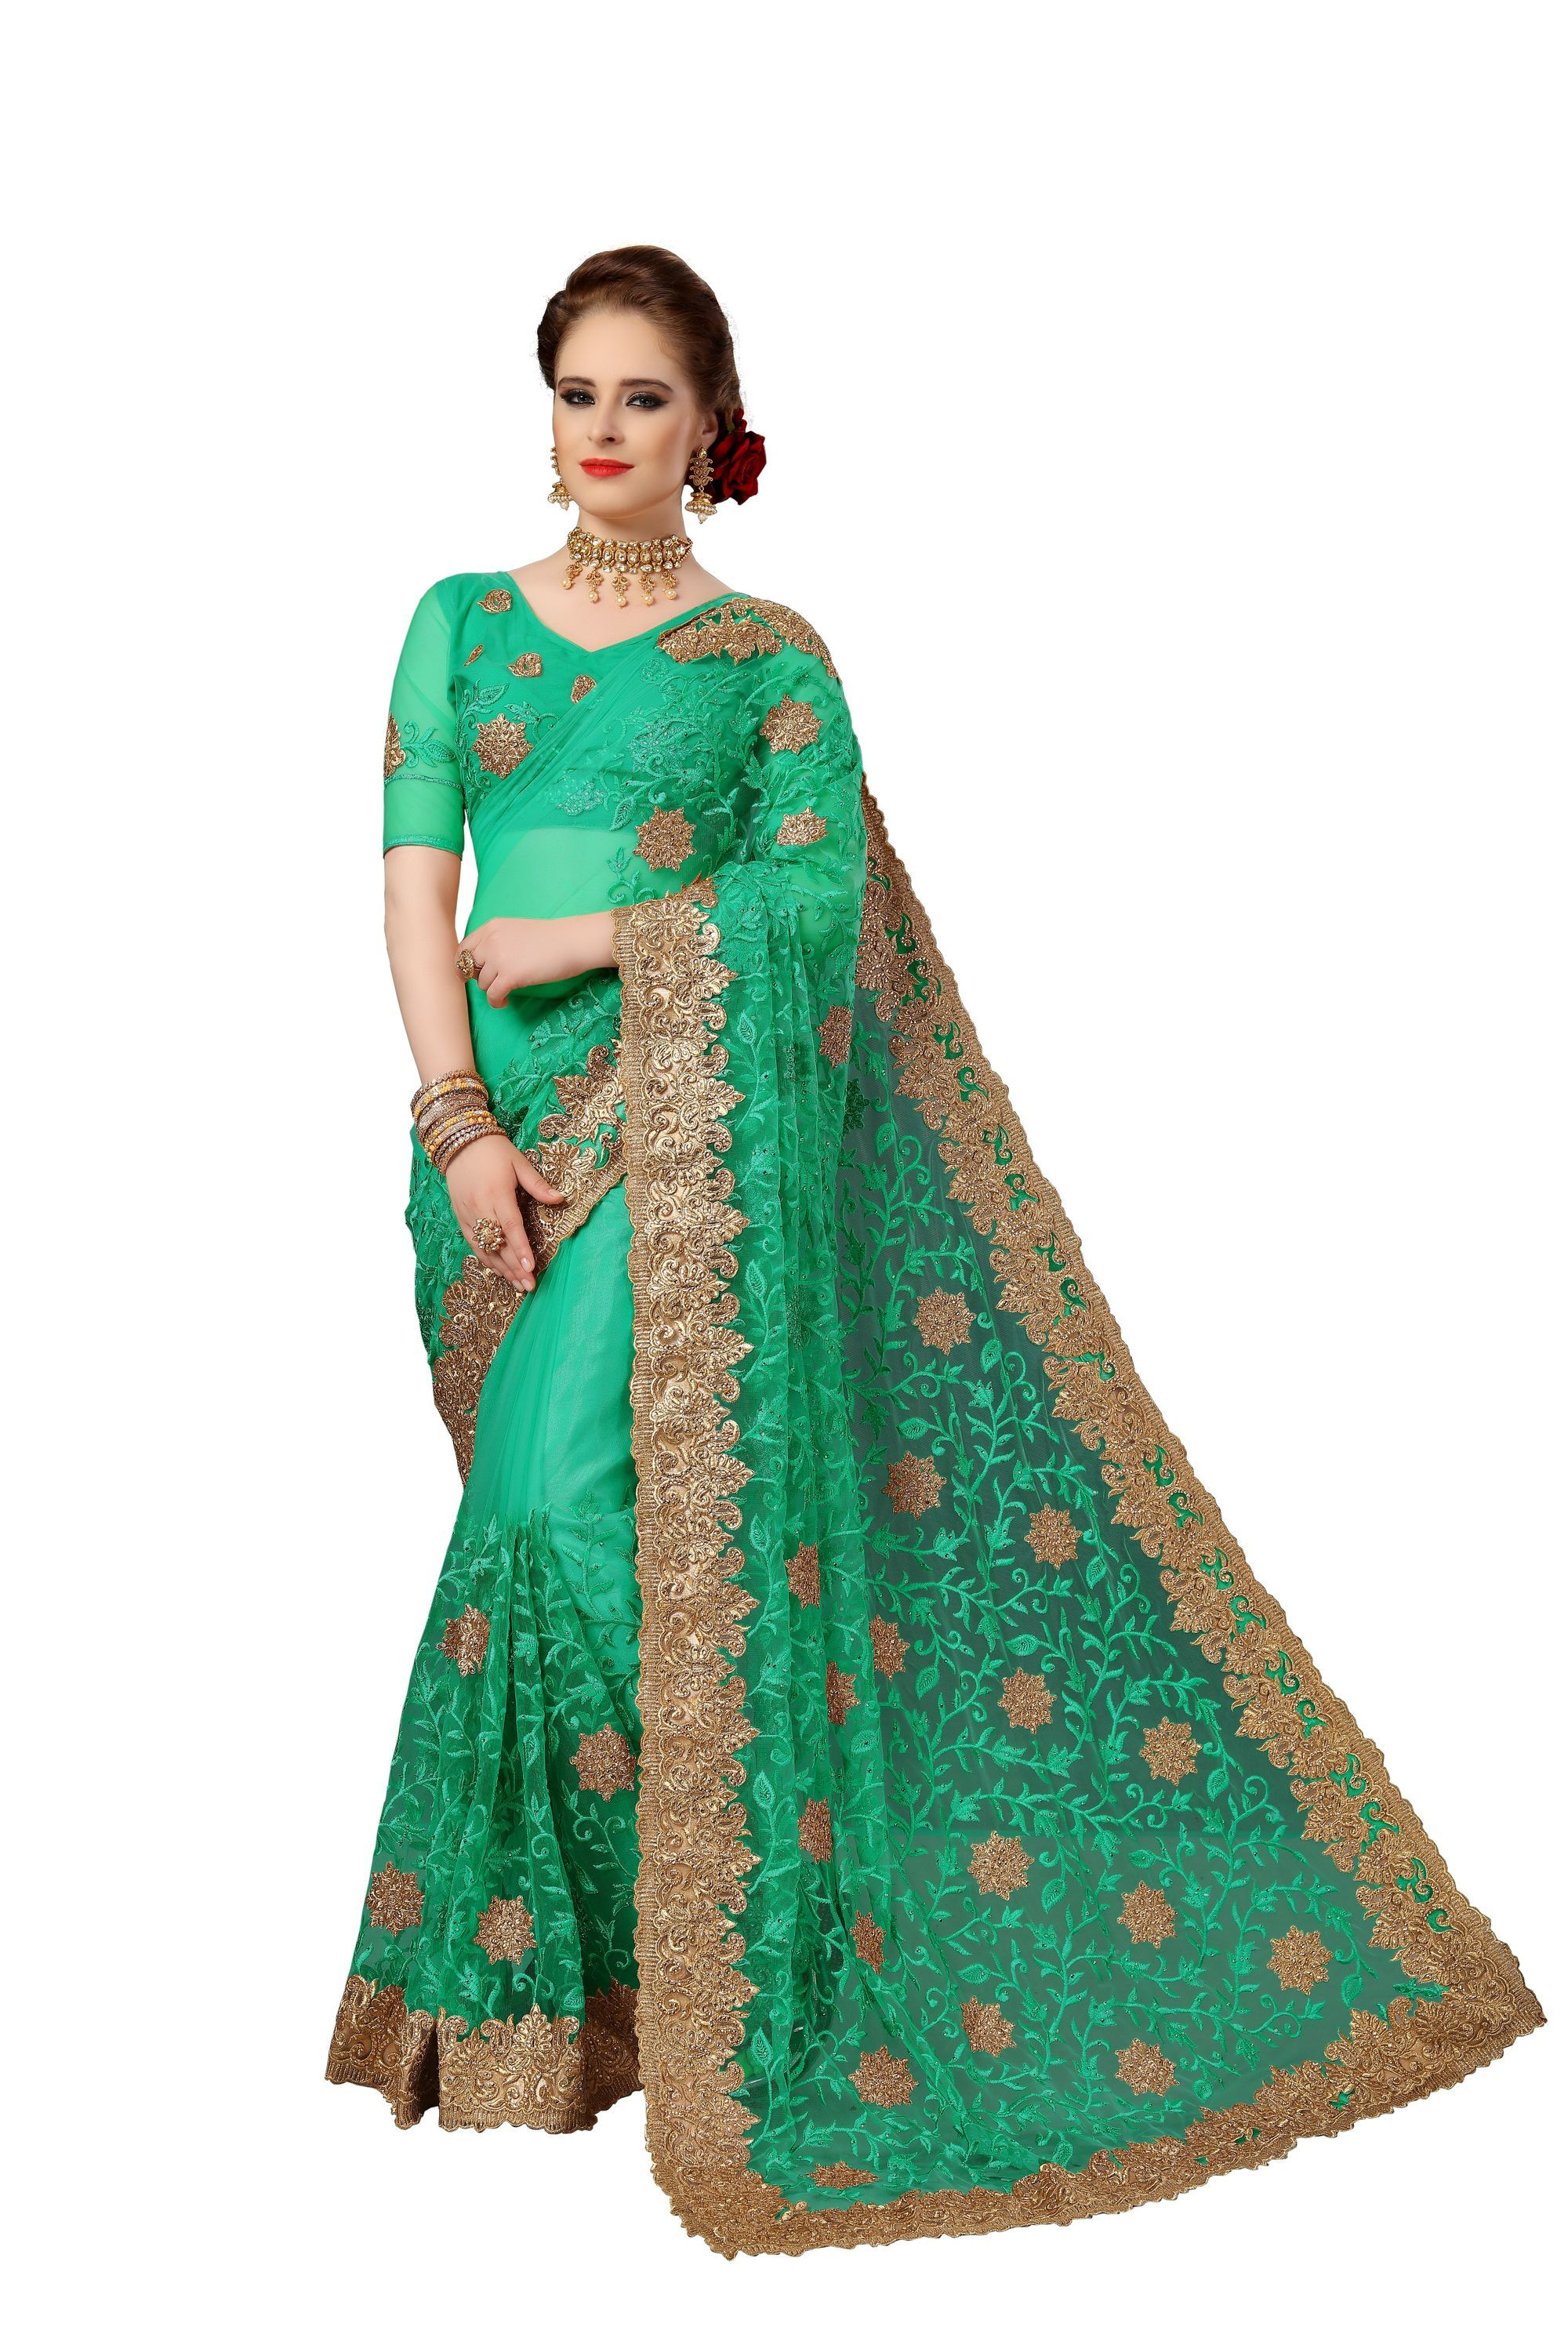 Heavy Embroidery, Stone Work Saree Collection